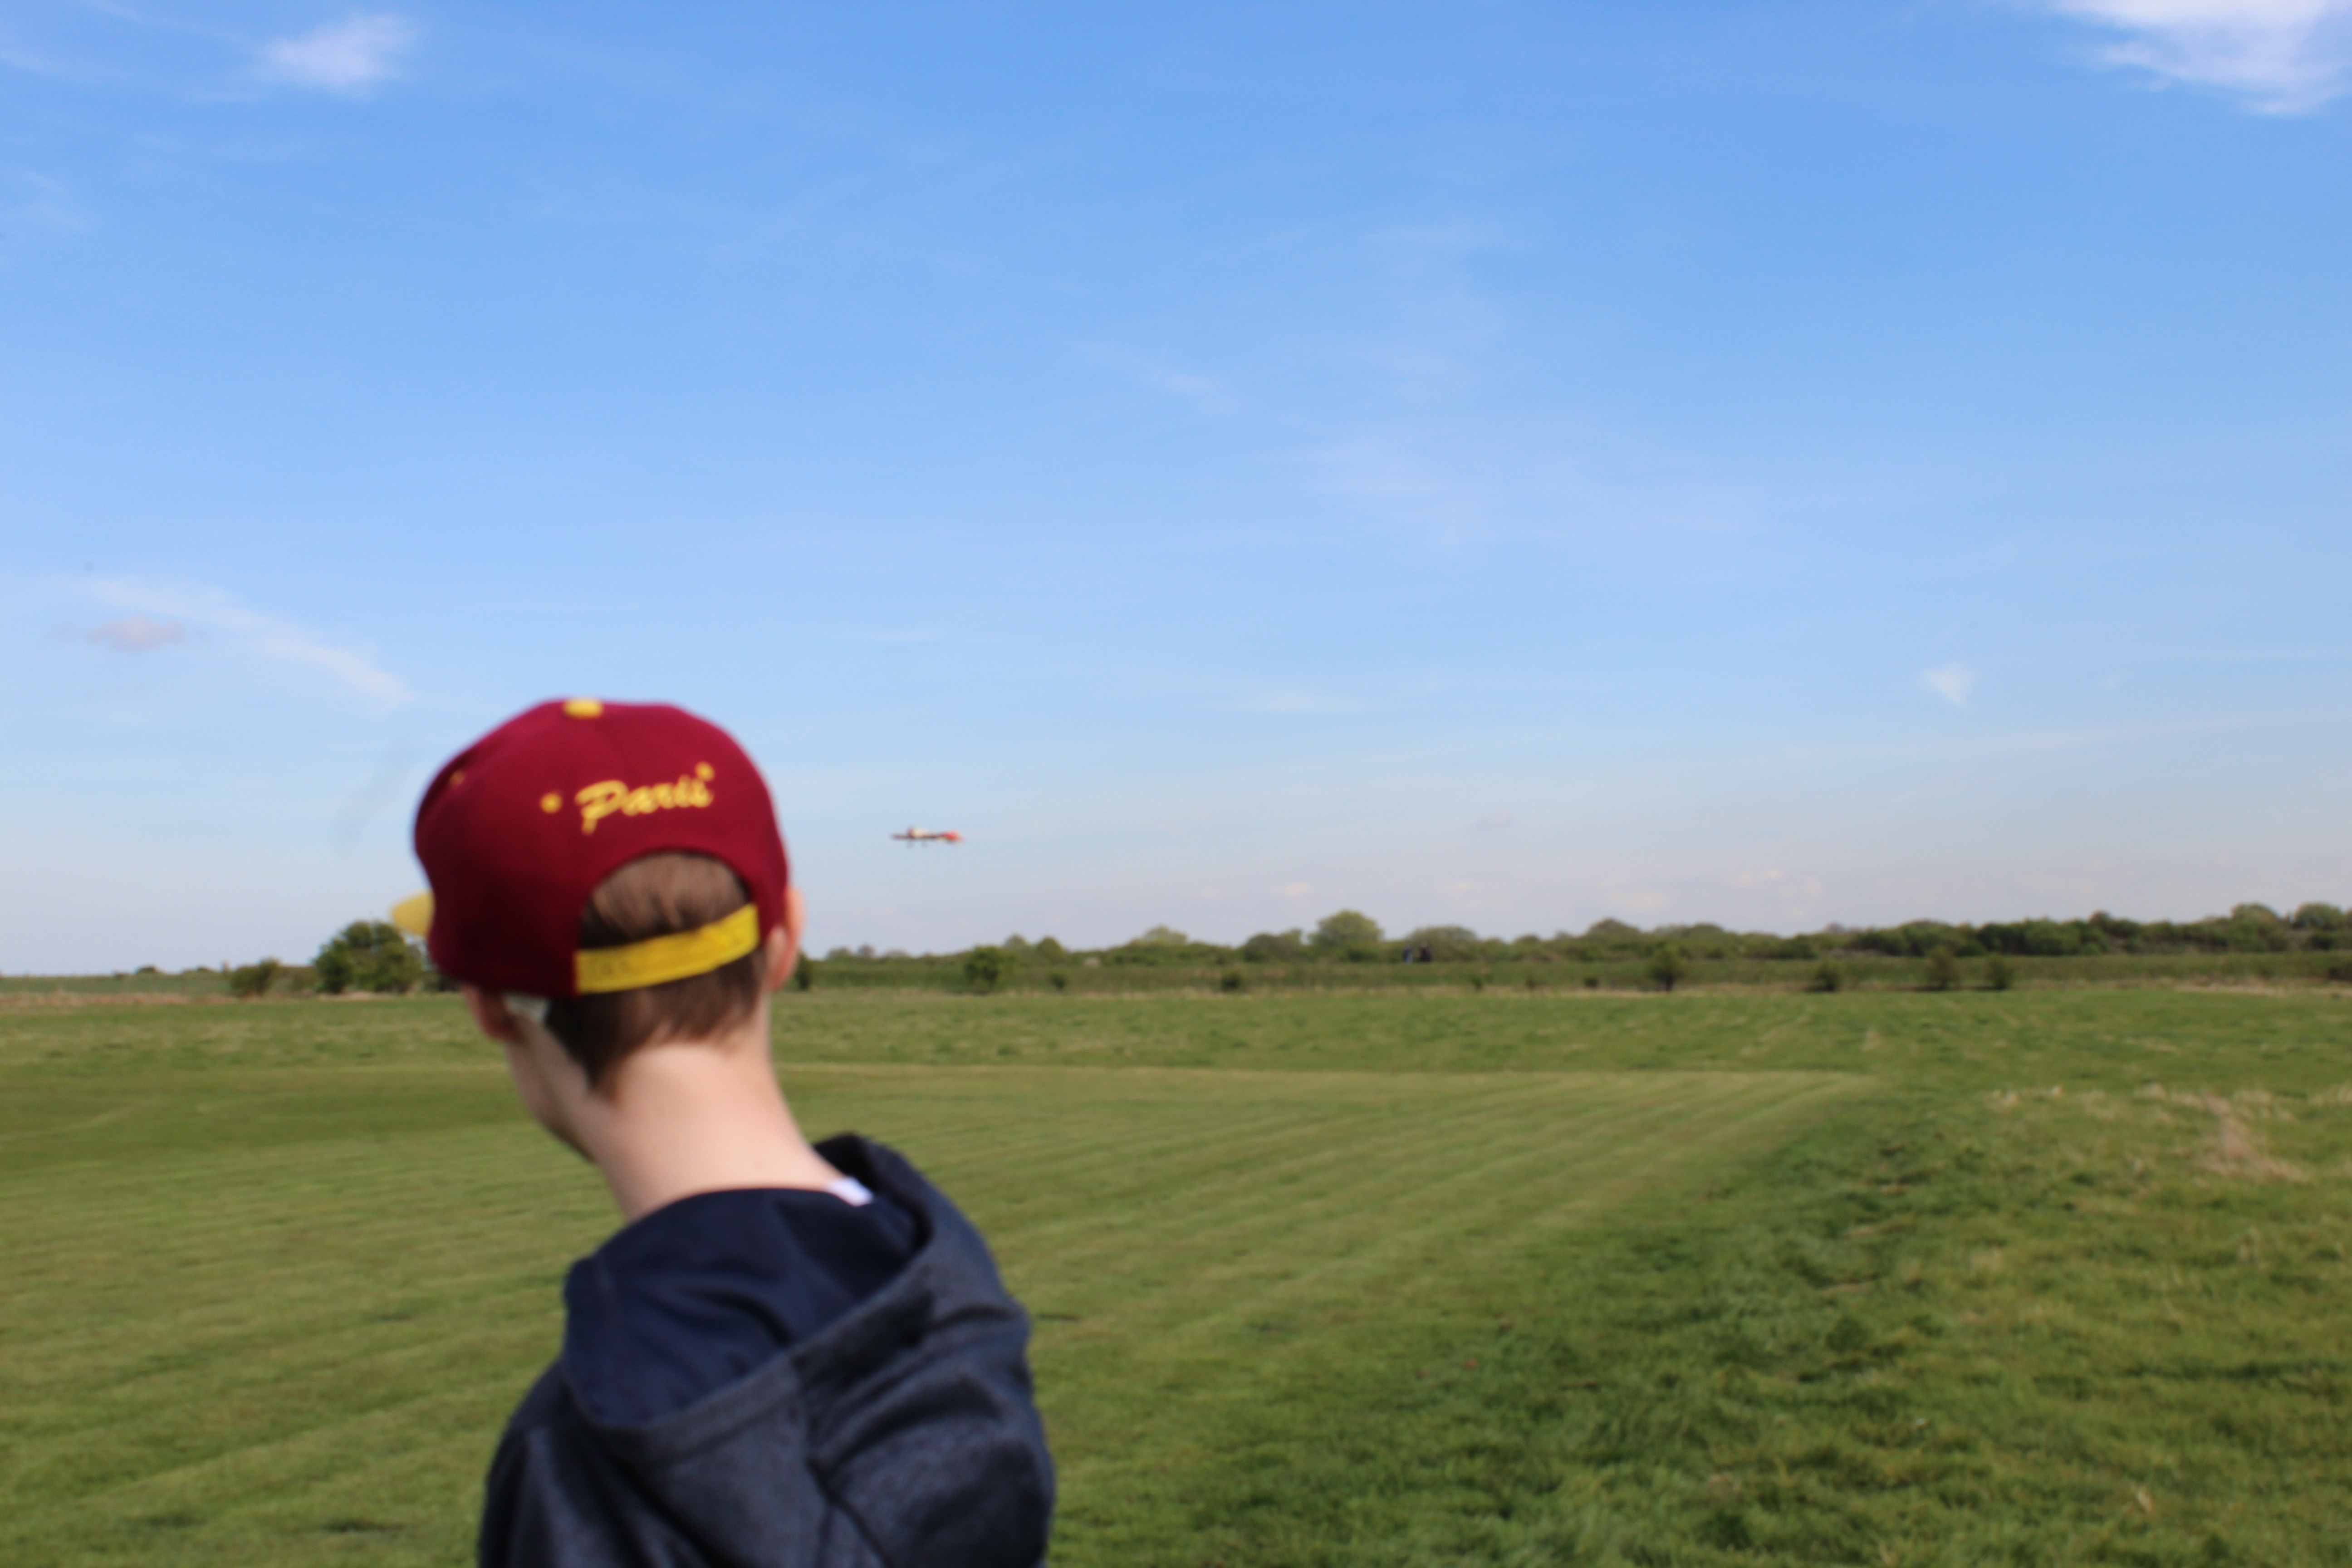 Callum on final approach